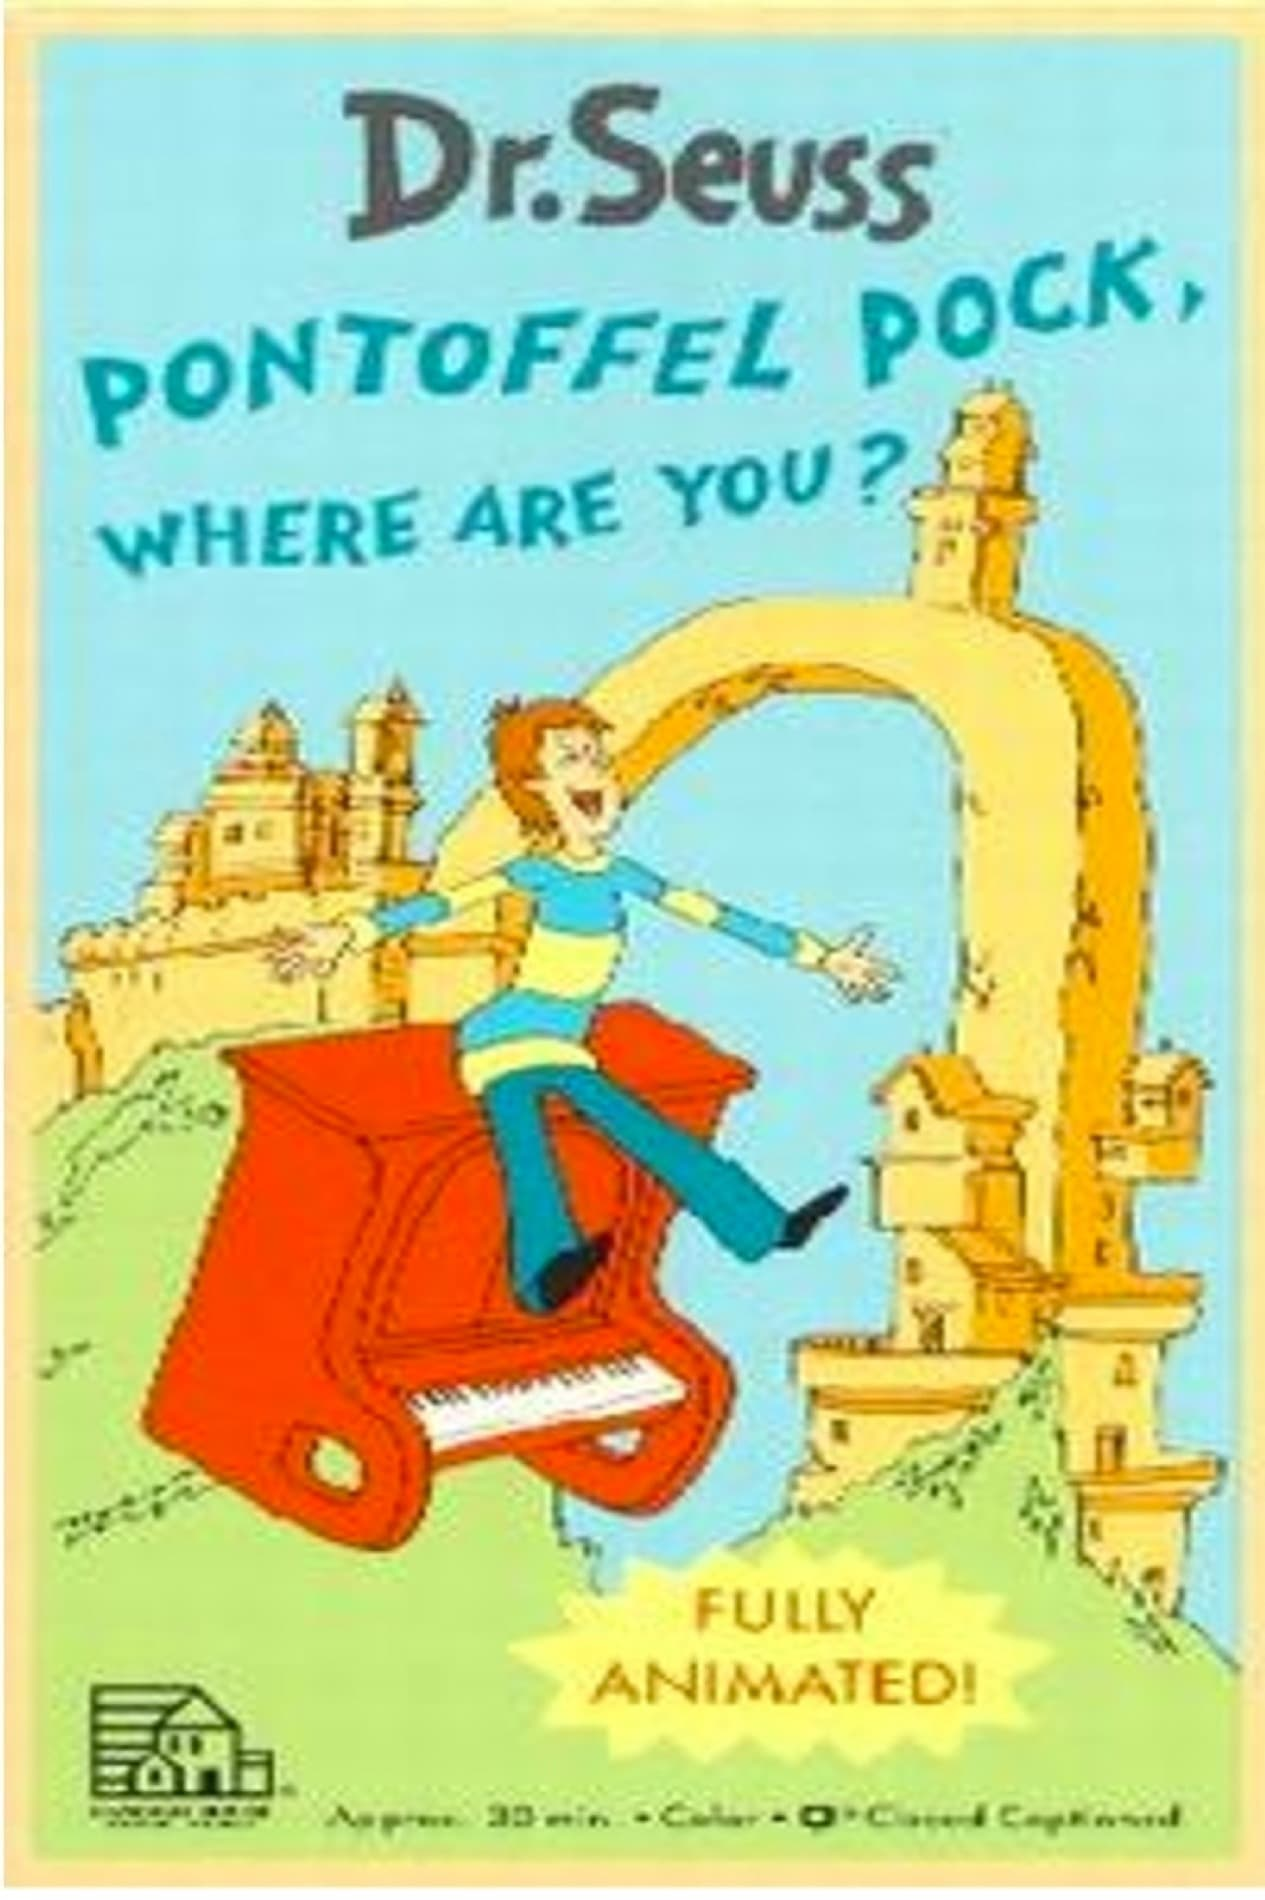 Pontoffel Pock, Where Are You? (1970)